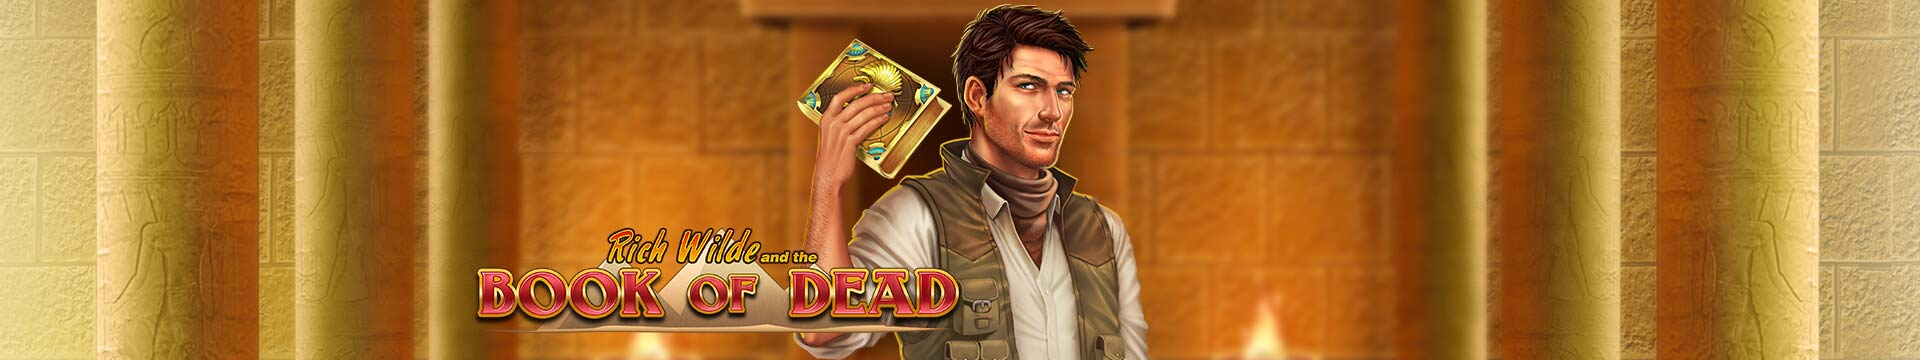 Slider Banner - Book of Dead 2